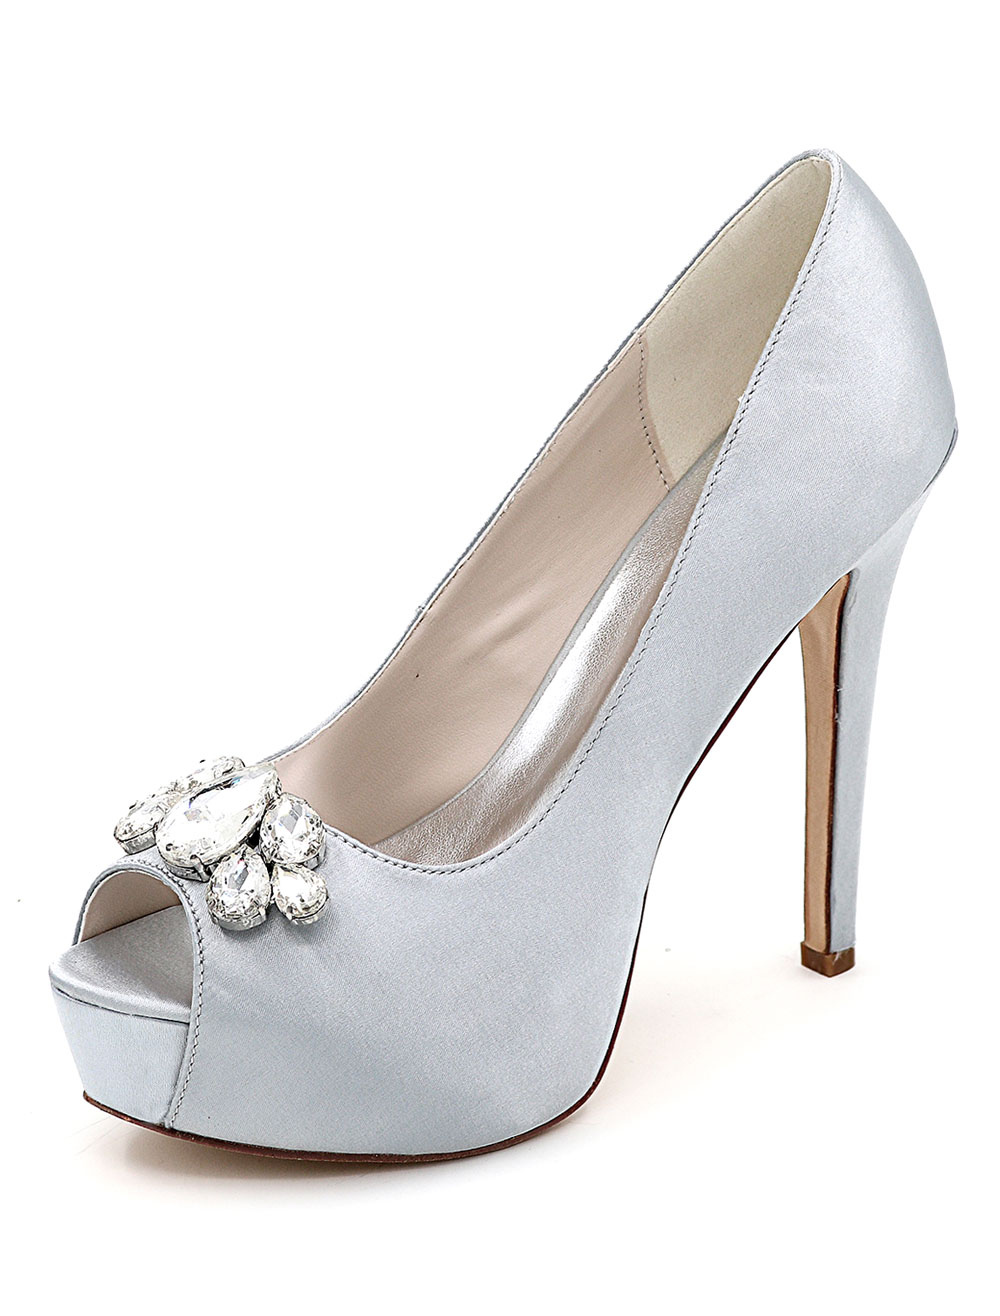 Buy Silver Wedding Shoes Platform Peep Toe Rhinestone Slip On High Heel Bridal Shoes for $43.99 in Milanoo store